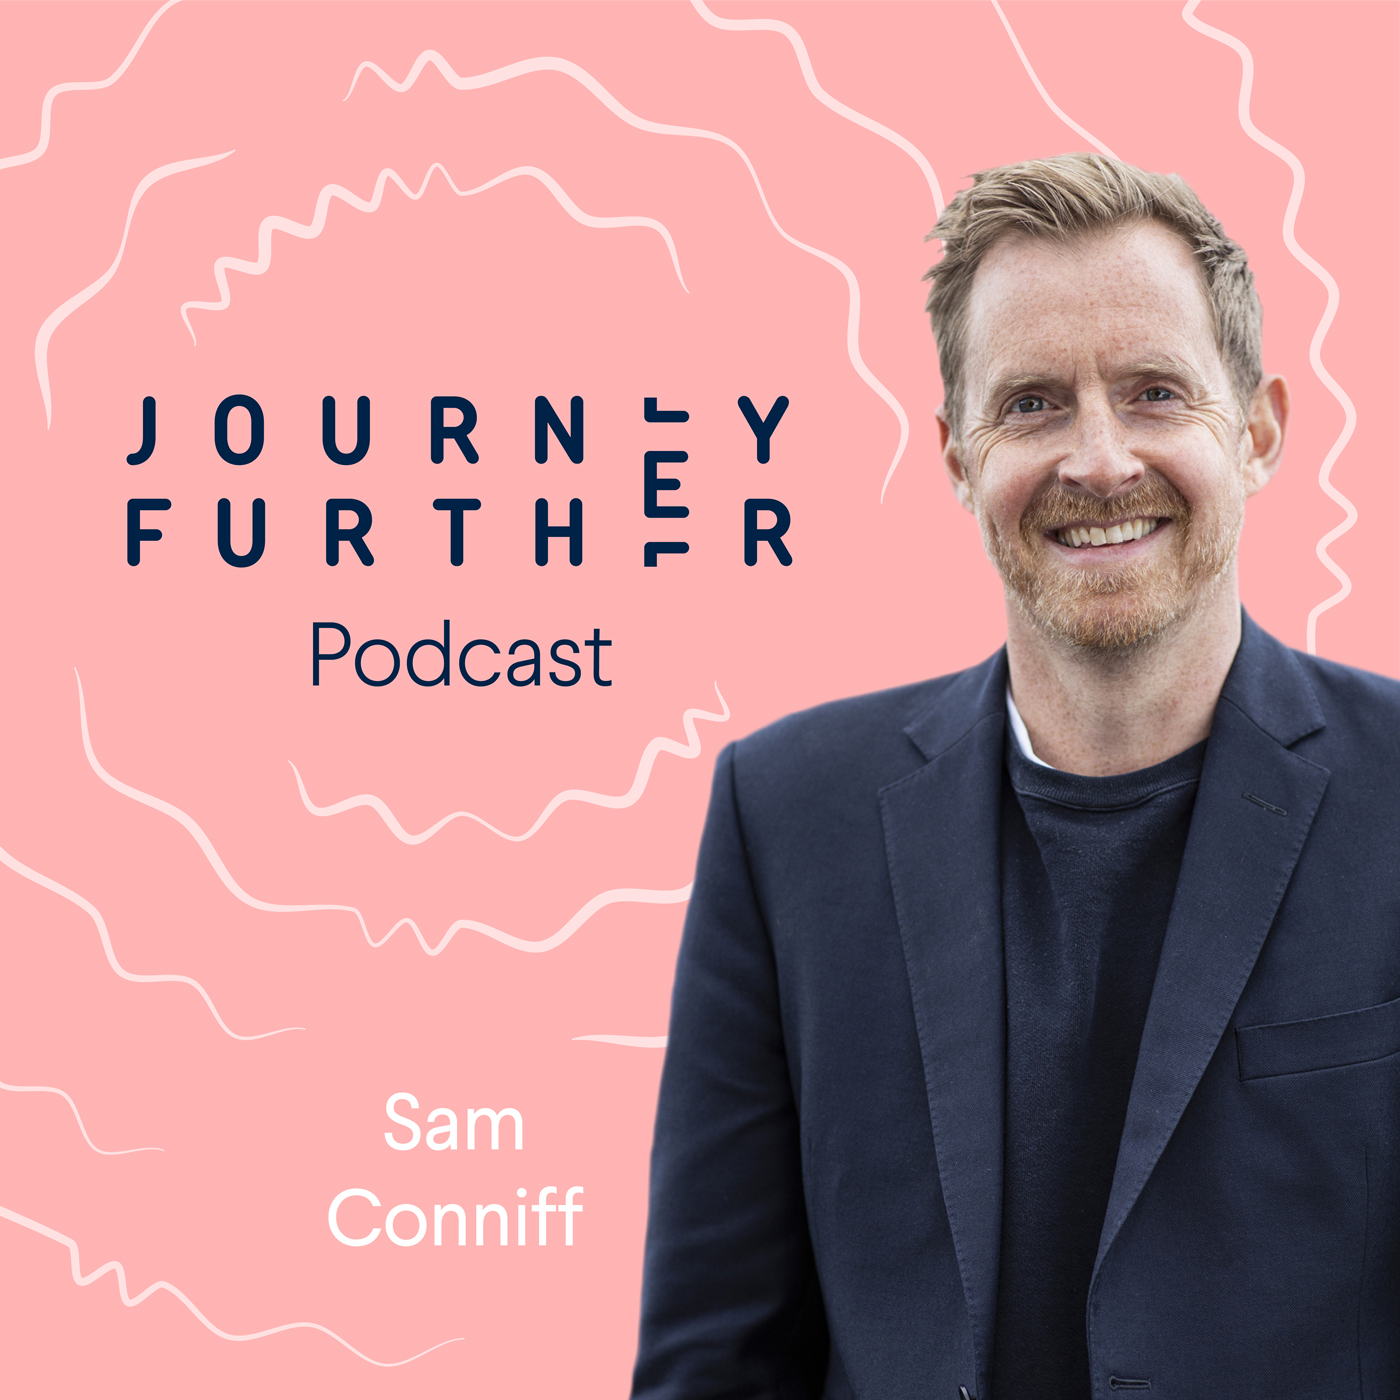 Be More Pirate with Sam Conniff